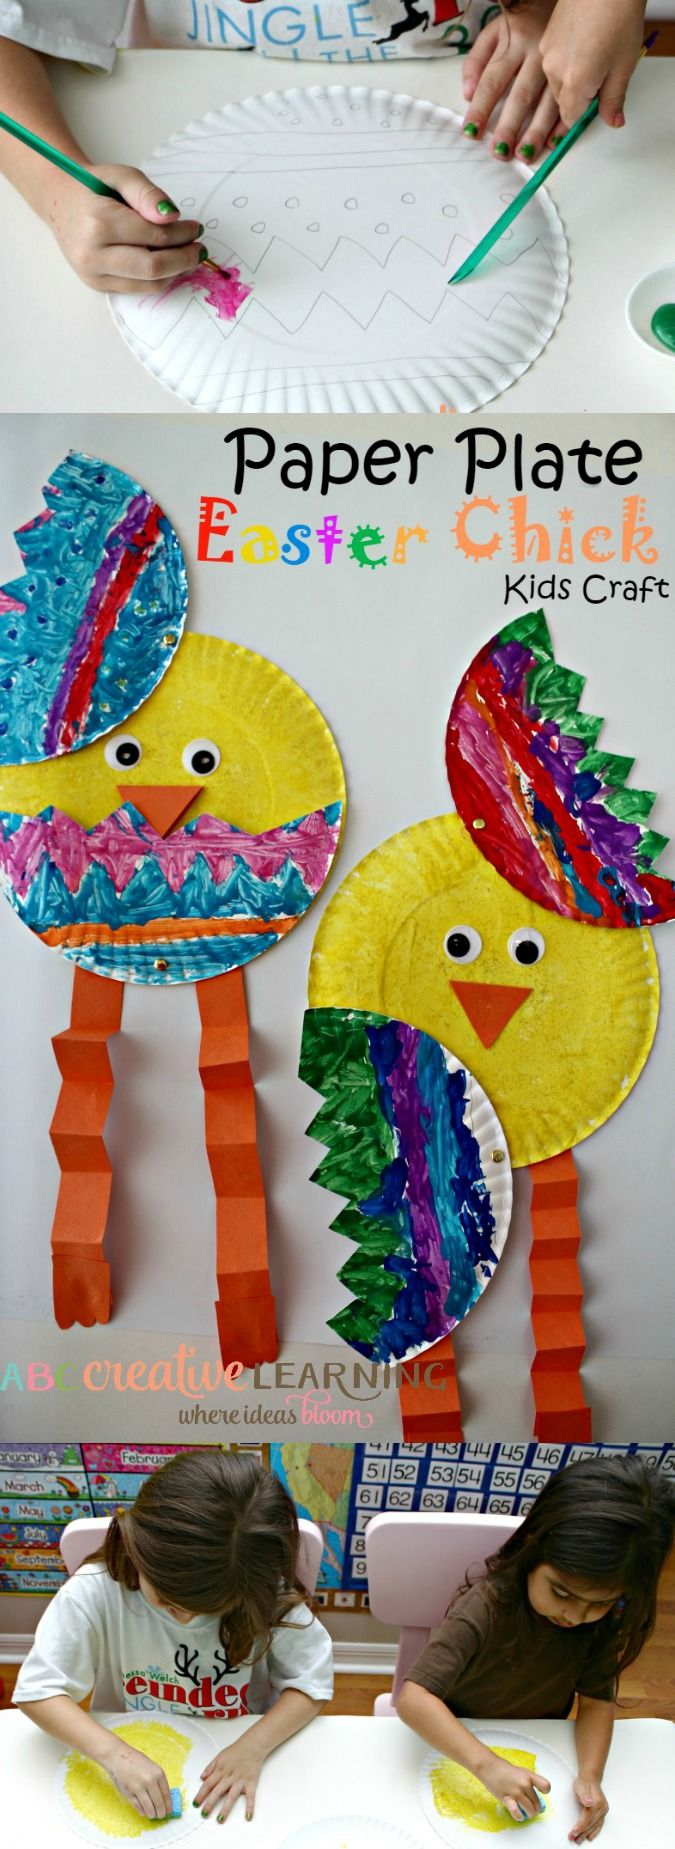 Paper Plate Easter Craft